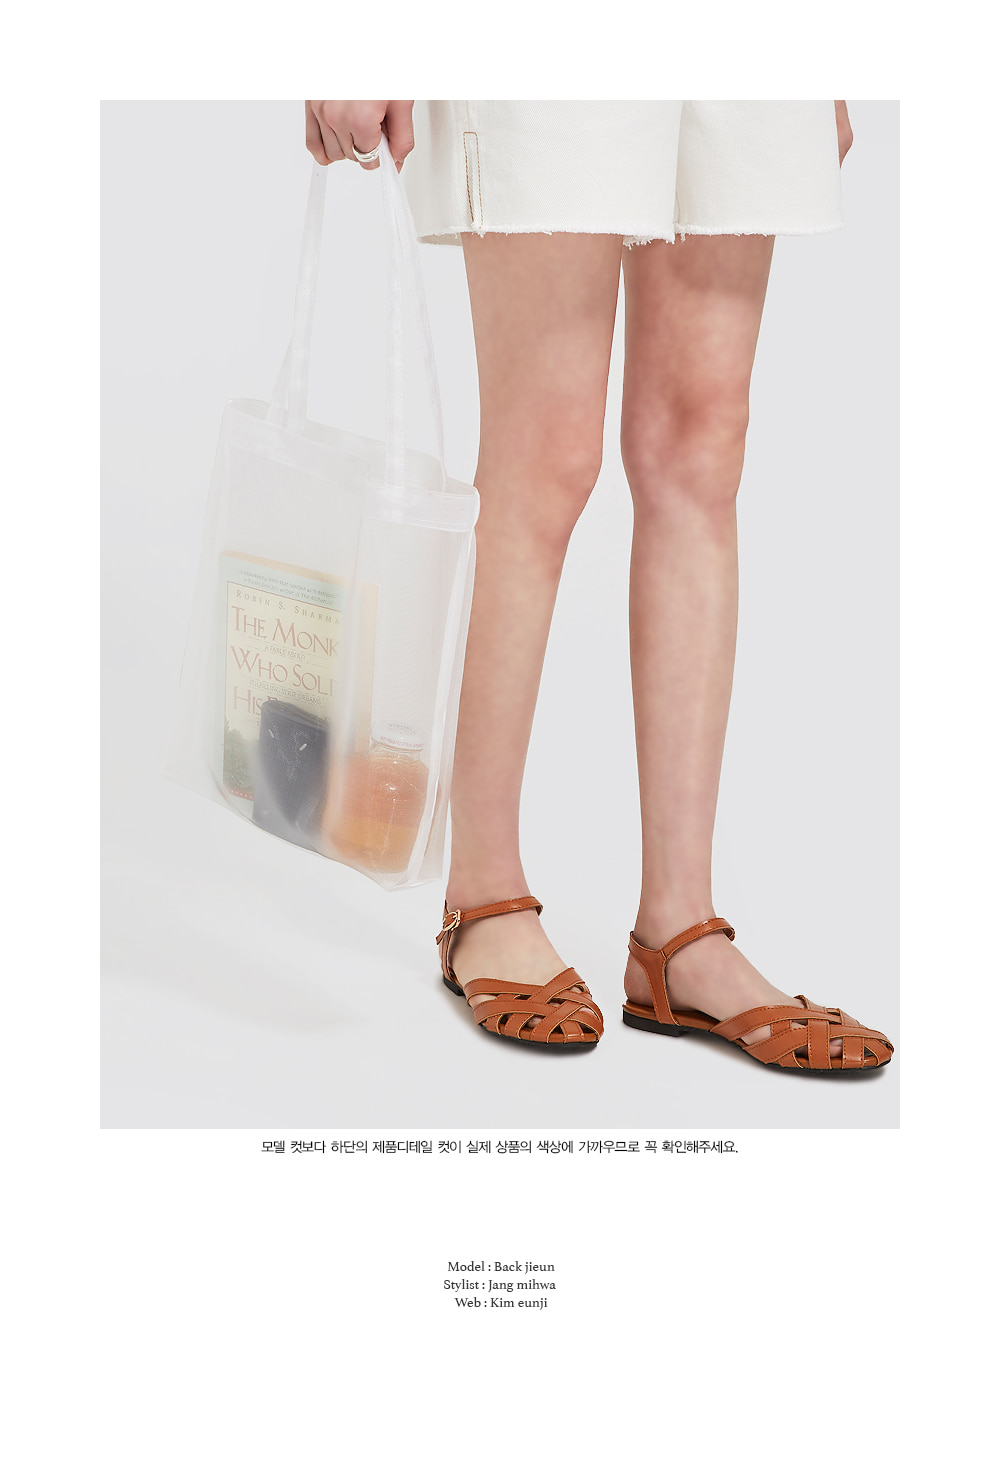 AIN - Korean Fashion - #Kfashion - Mesh Beach Bag